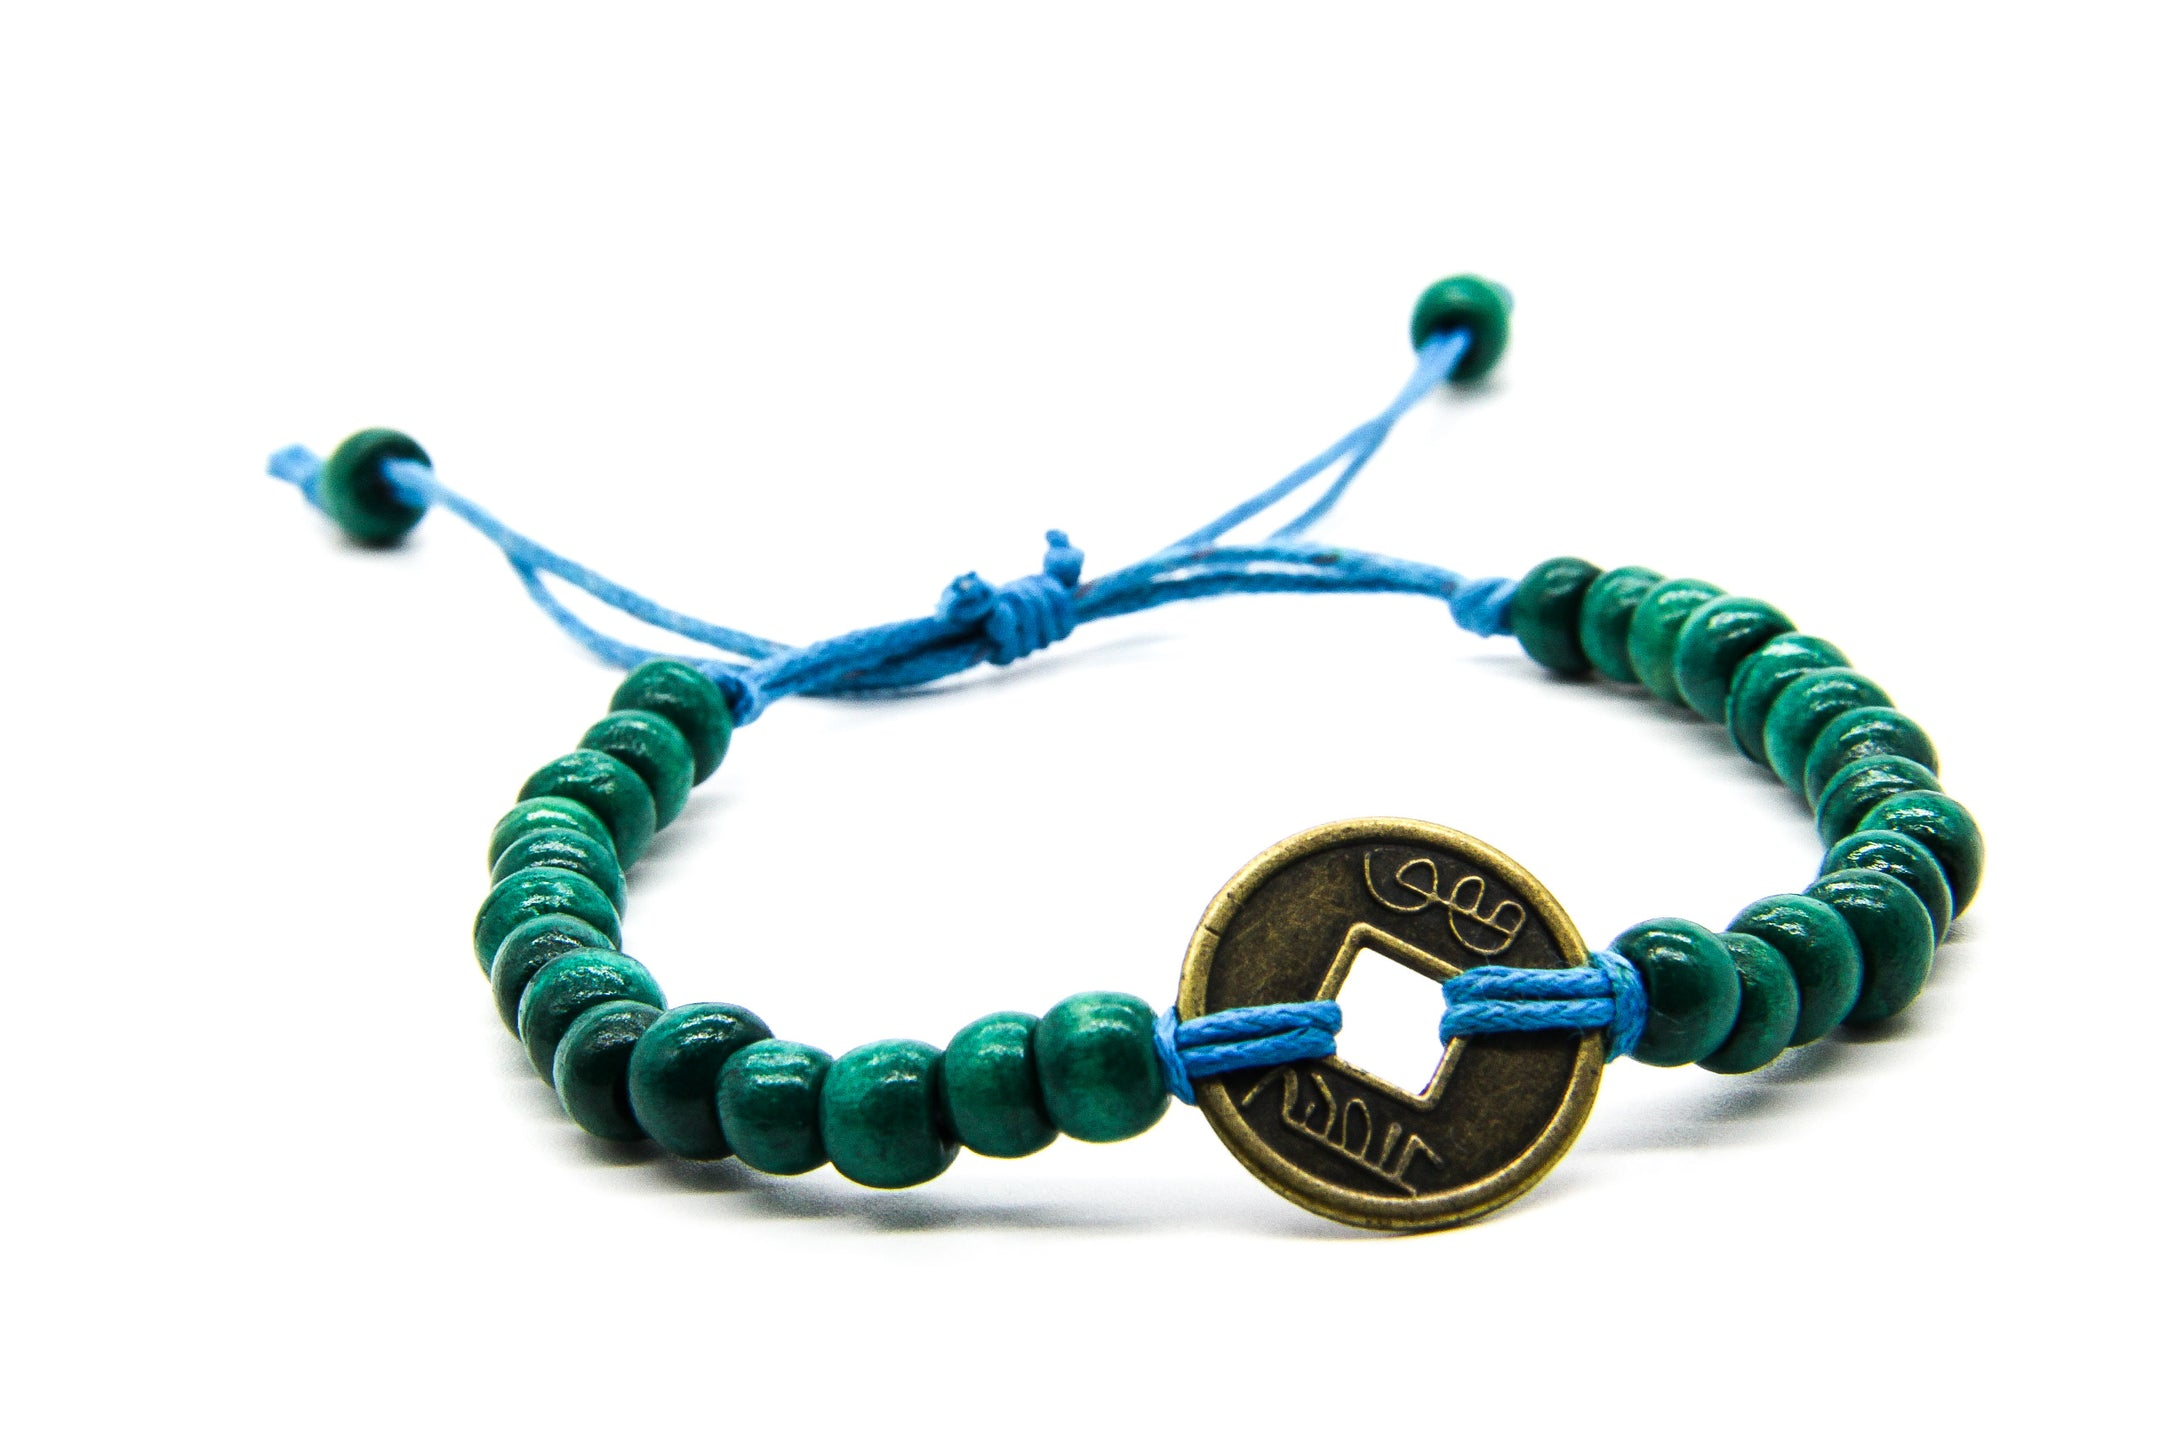 Turquoise Wooden Bead Bracelets | Coin Pendant | Fair Trade Beach Jewellery | Ben's Beach London